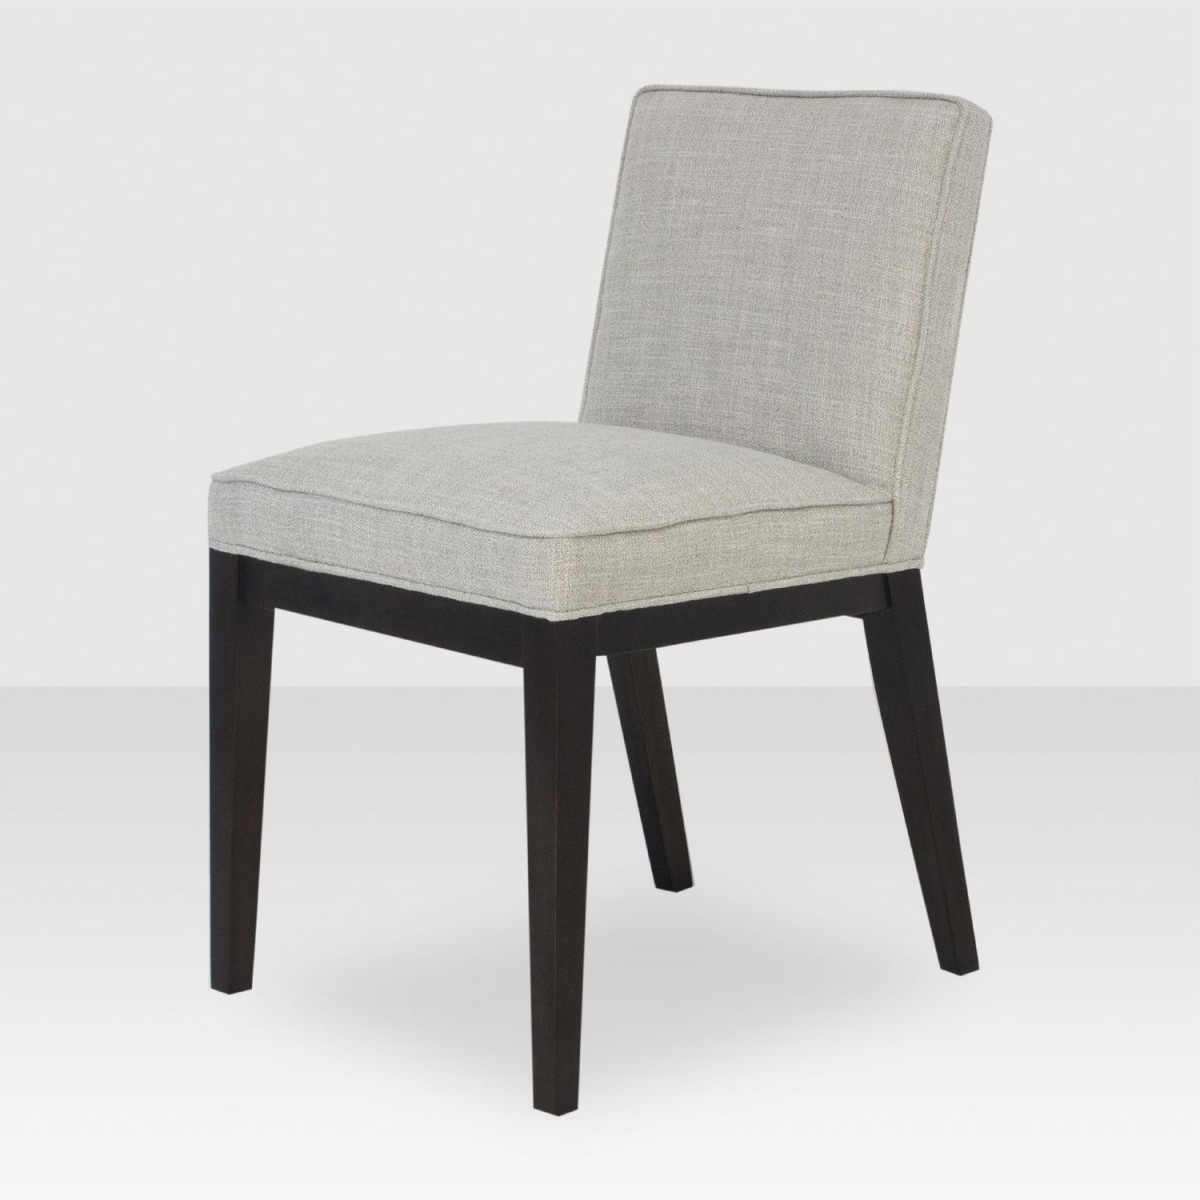 Oliver Side Chairs Intended For Trendy Oliver Side Chair Ash – Elte (View 2 of 20)